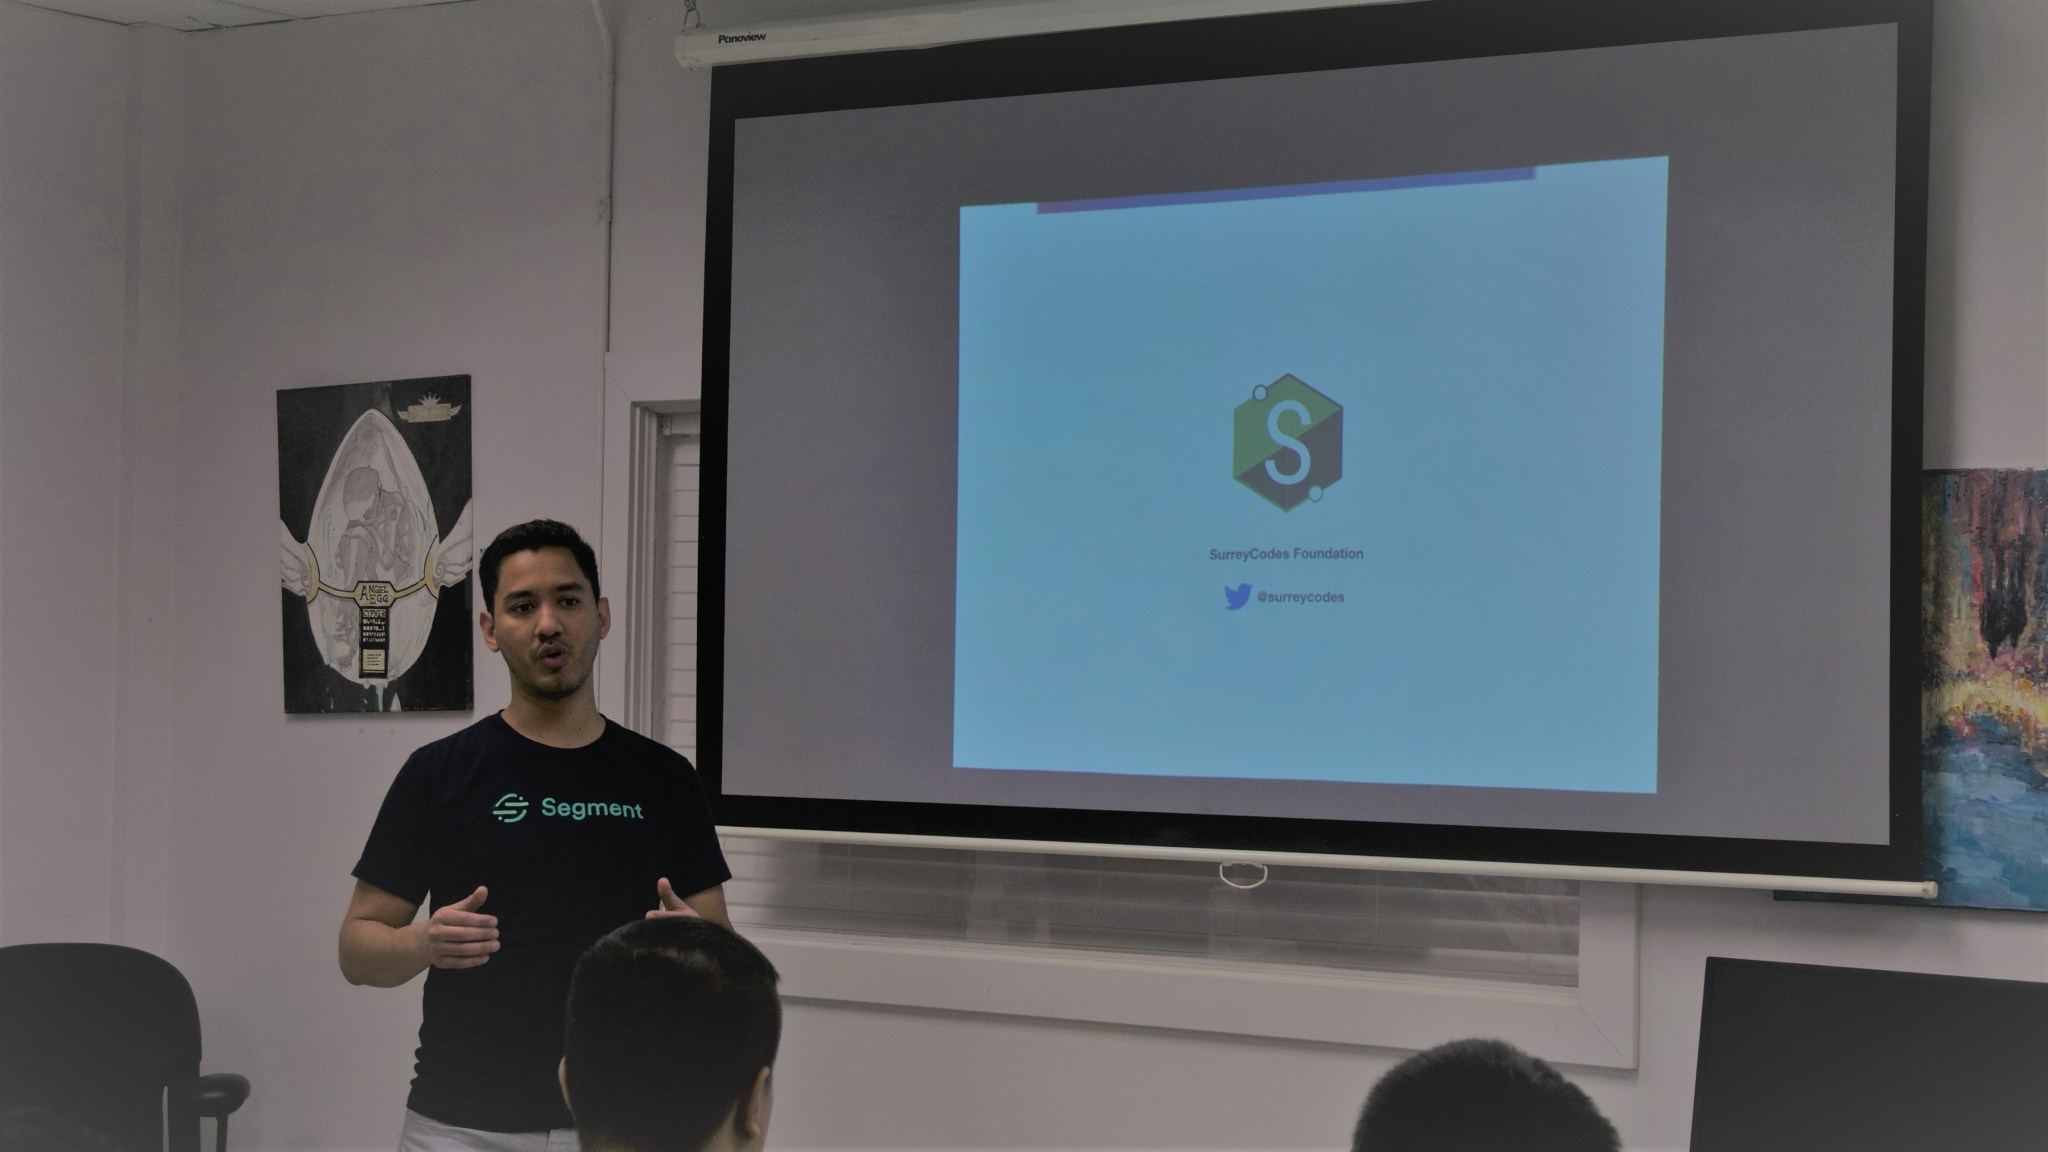 Luis Espinal - Product Manager presenting